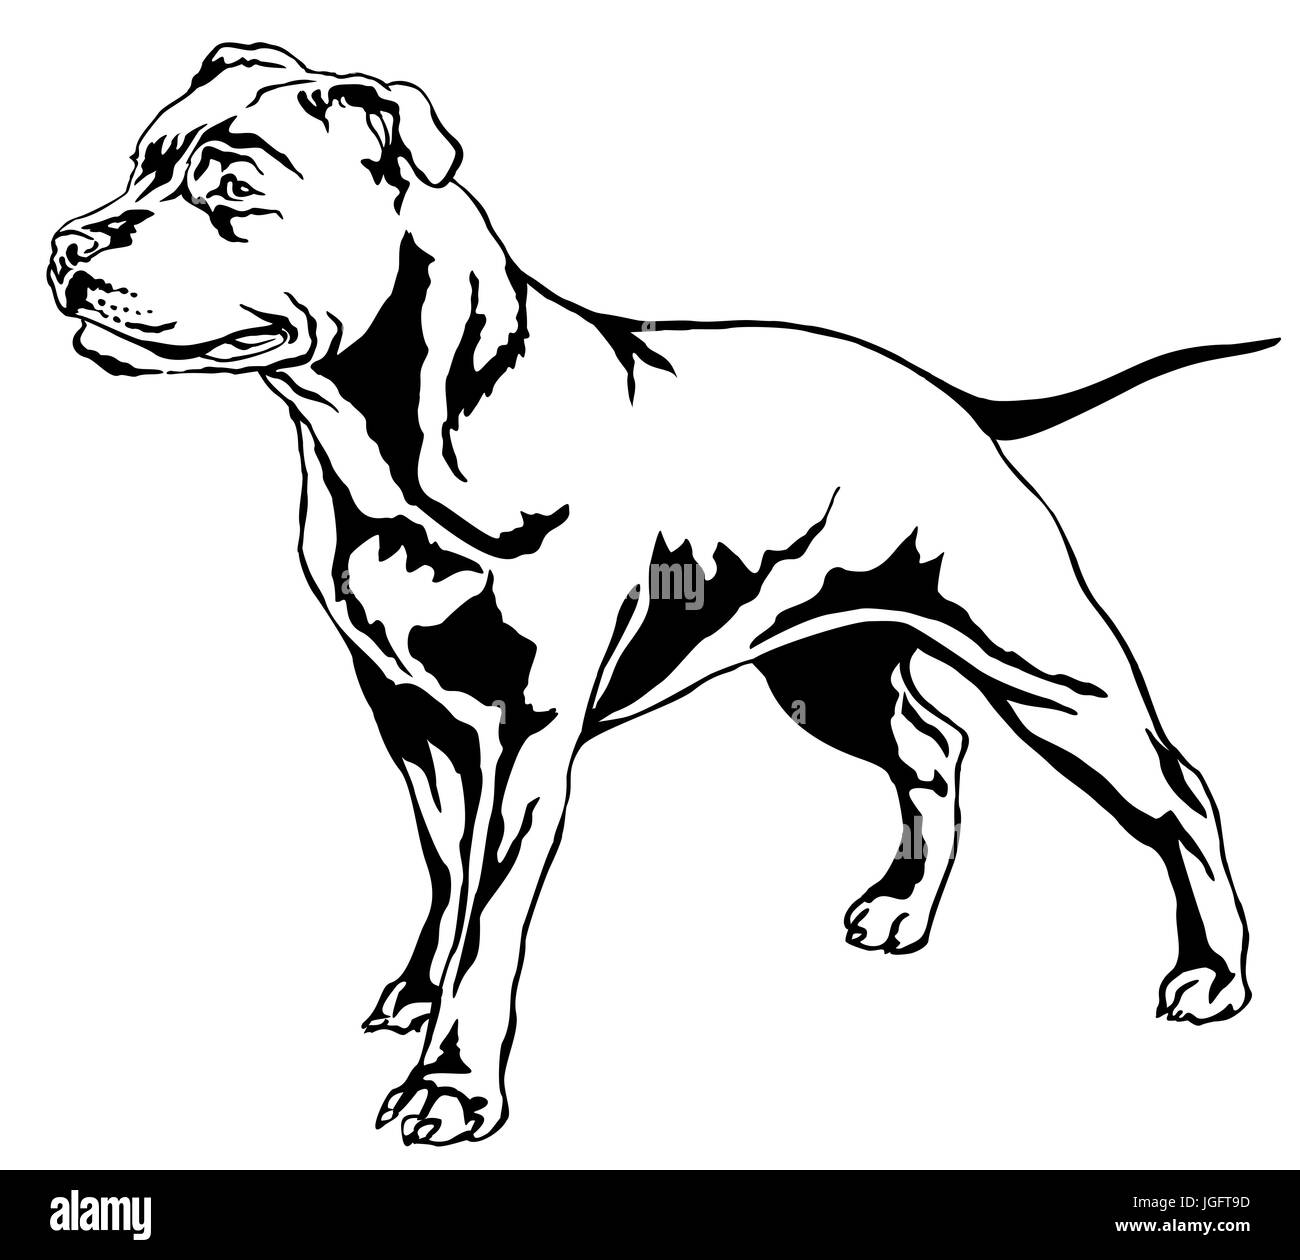 Decorative portrait of standing in profile dog Staffordshire Bull Terrier, vector isolated illustration in black - Stock Image